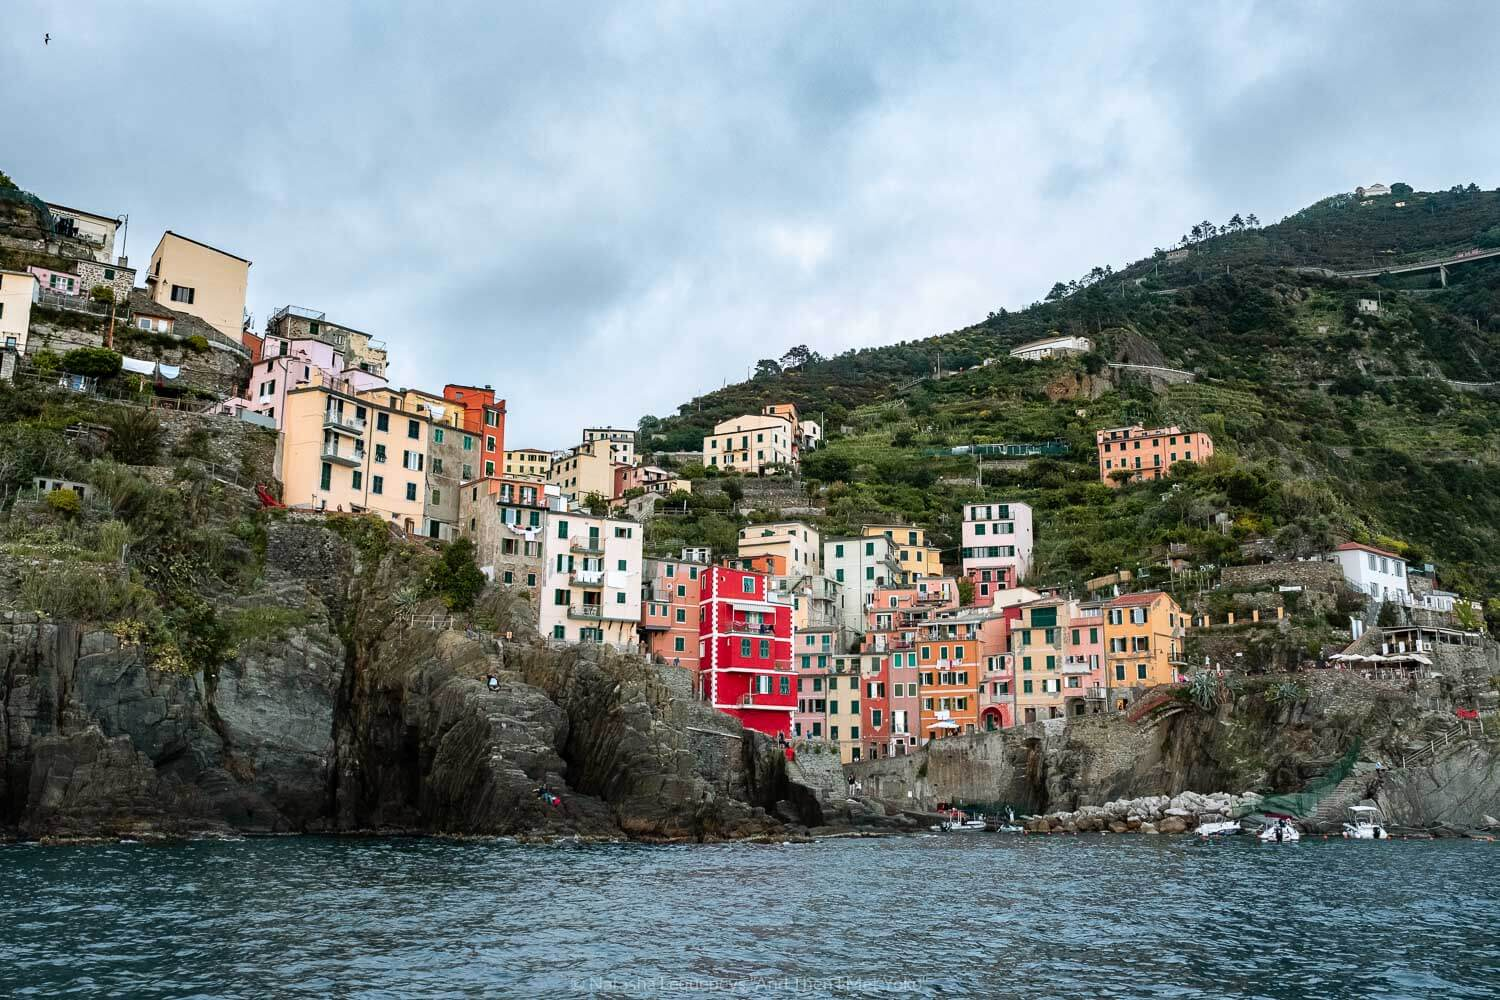 """Riomaggiore from the water, Cinque Terre. Travel photography and guide by © Natasha Lequepeys for """"And Then I Met Yoko"""". #cinqueterre #italy #travelphotography"""